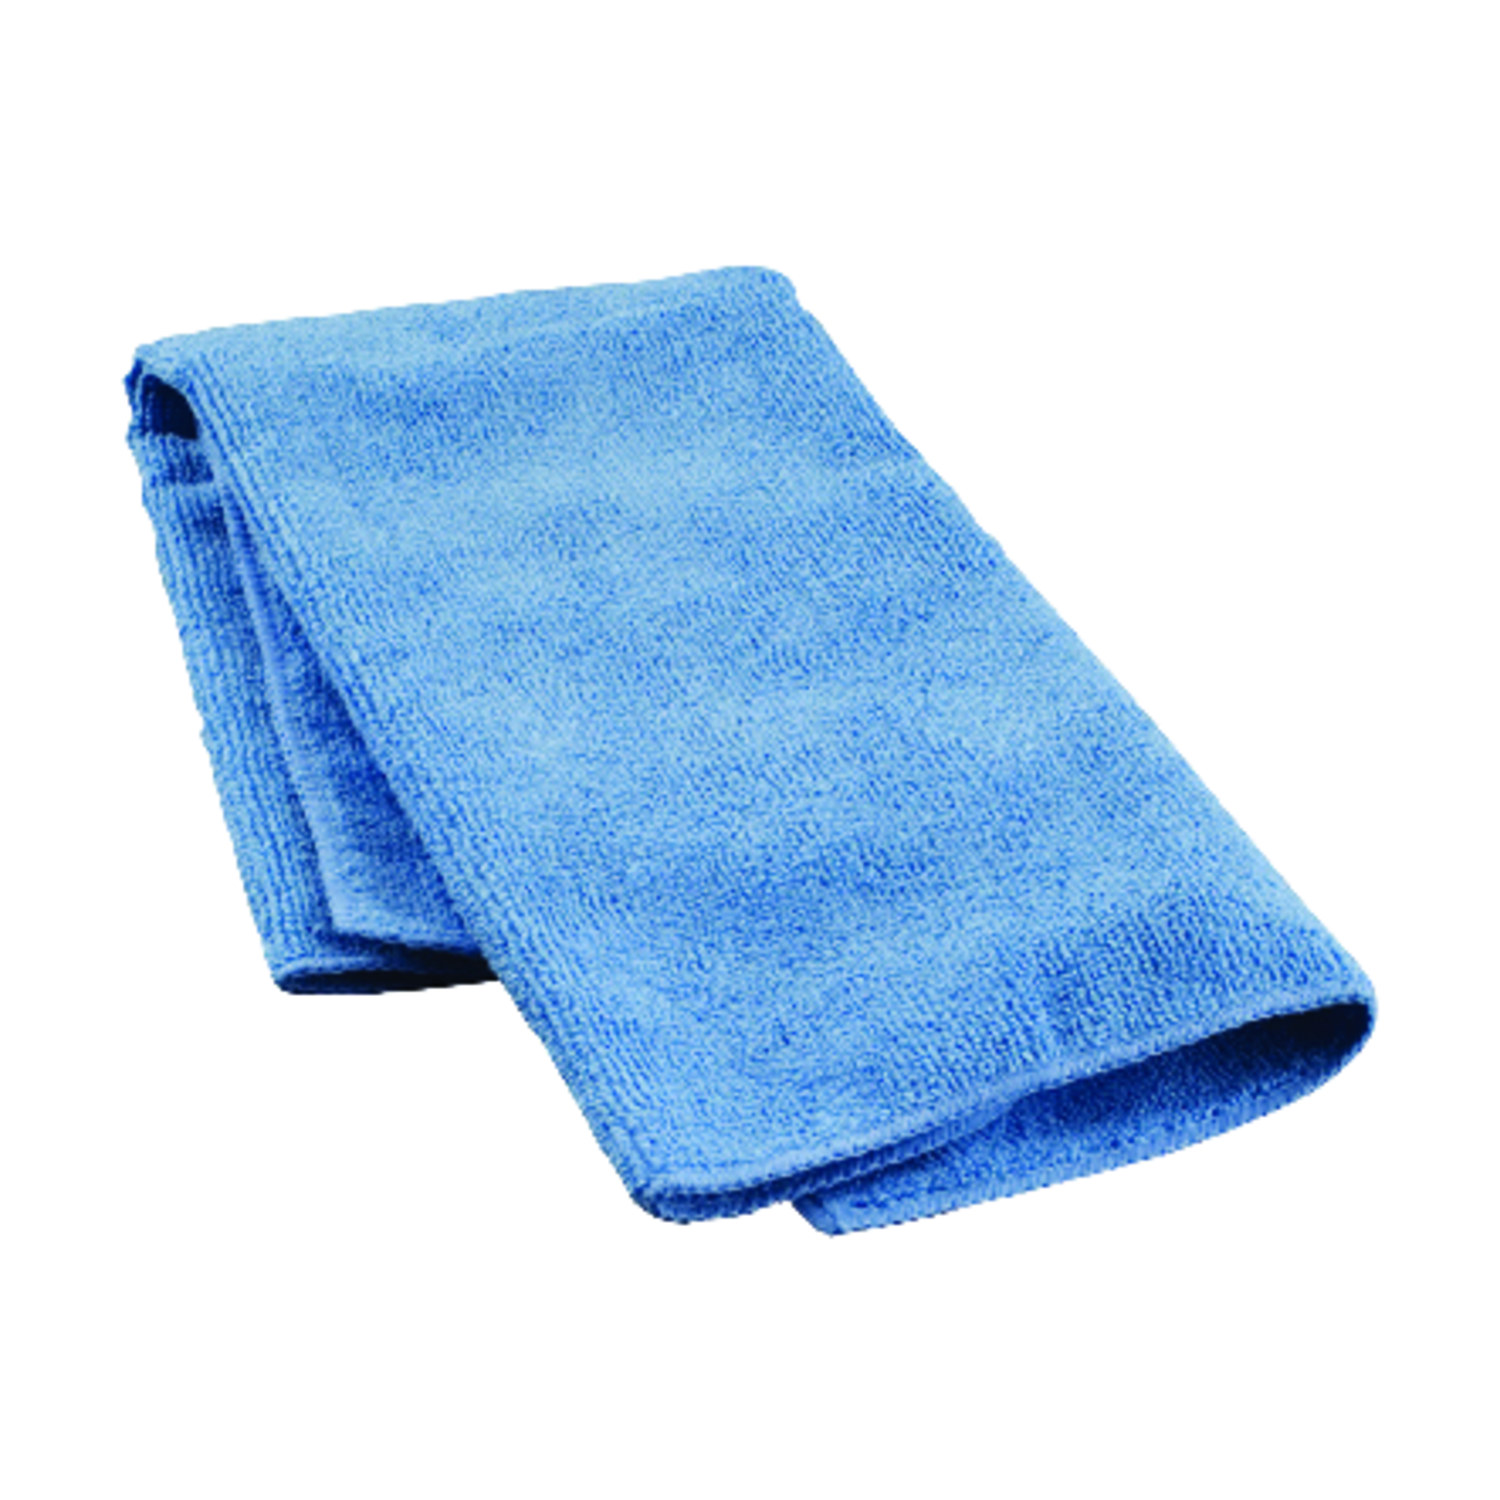 microfiber towels cleaning cloths and